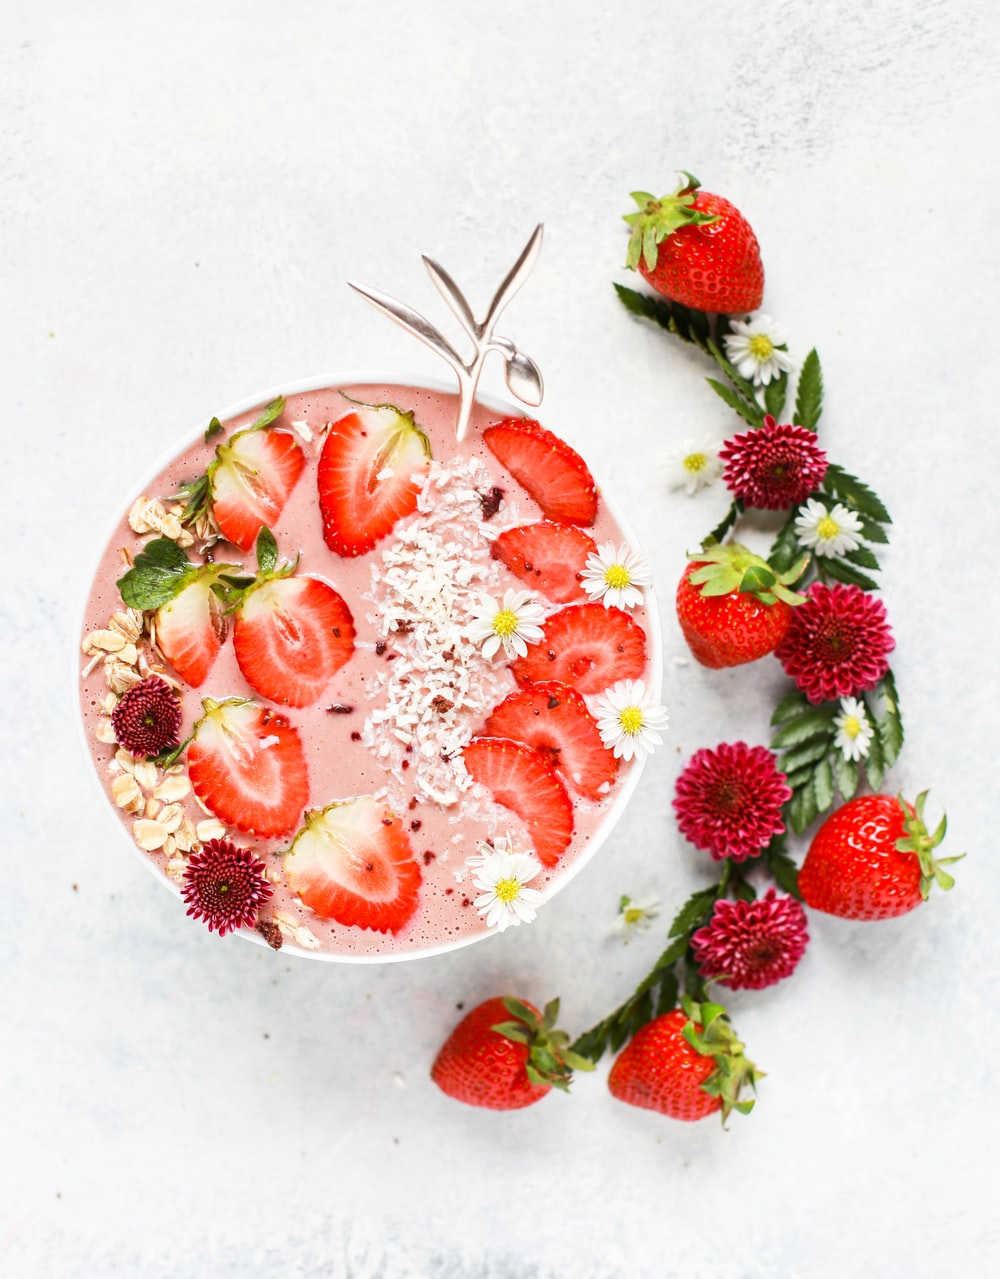 slice strawberry fruit on fruit shake with petaled flowers